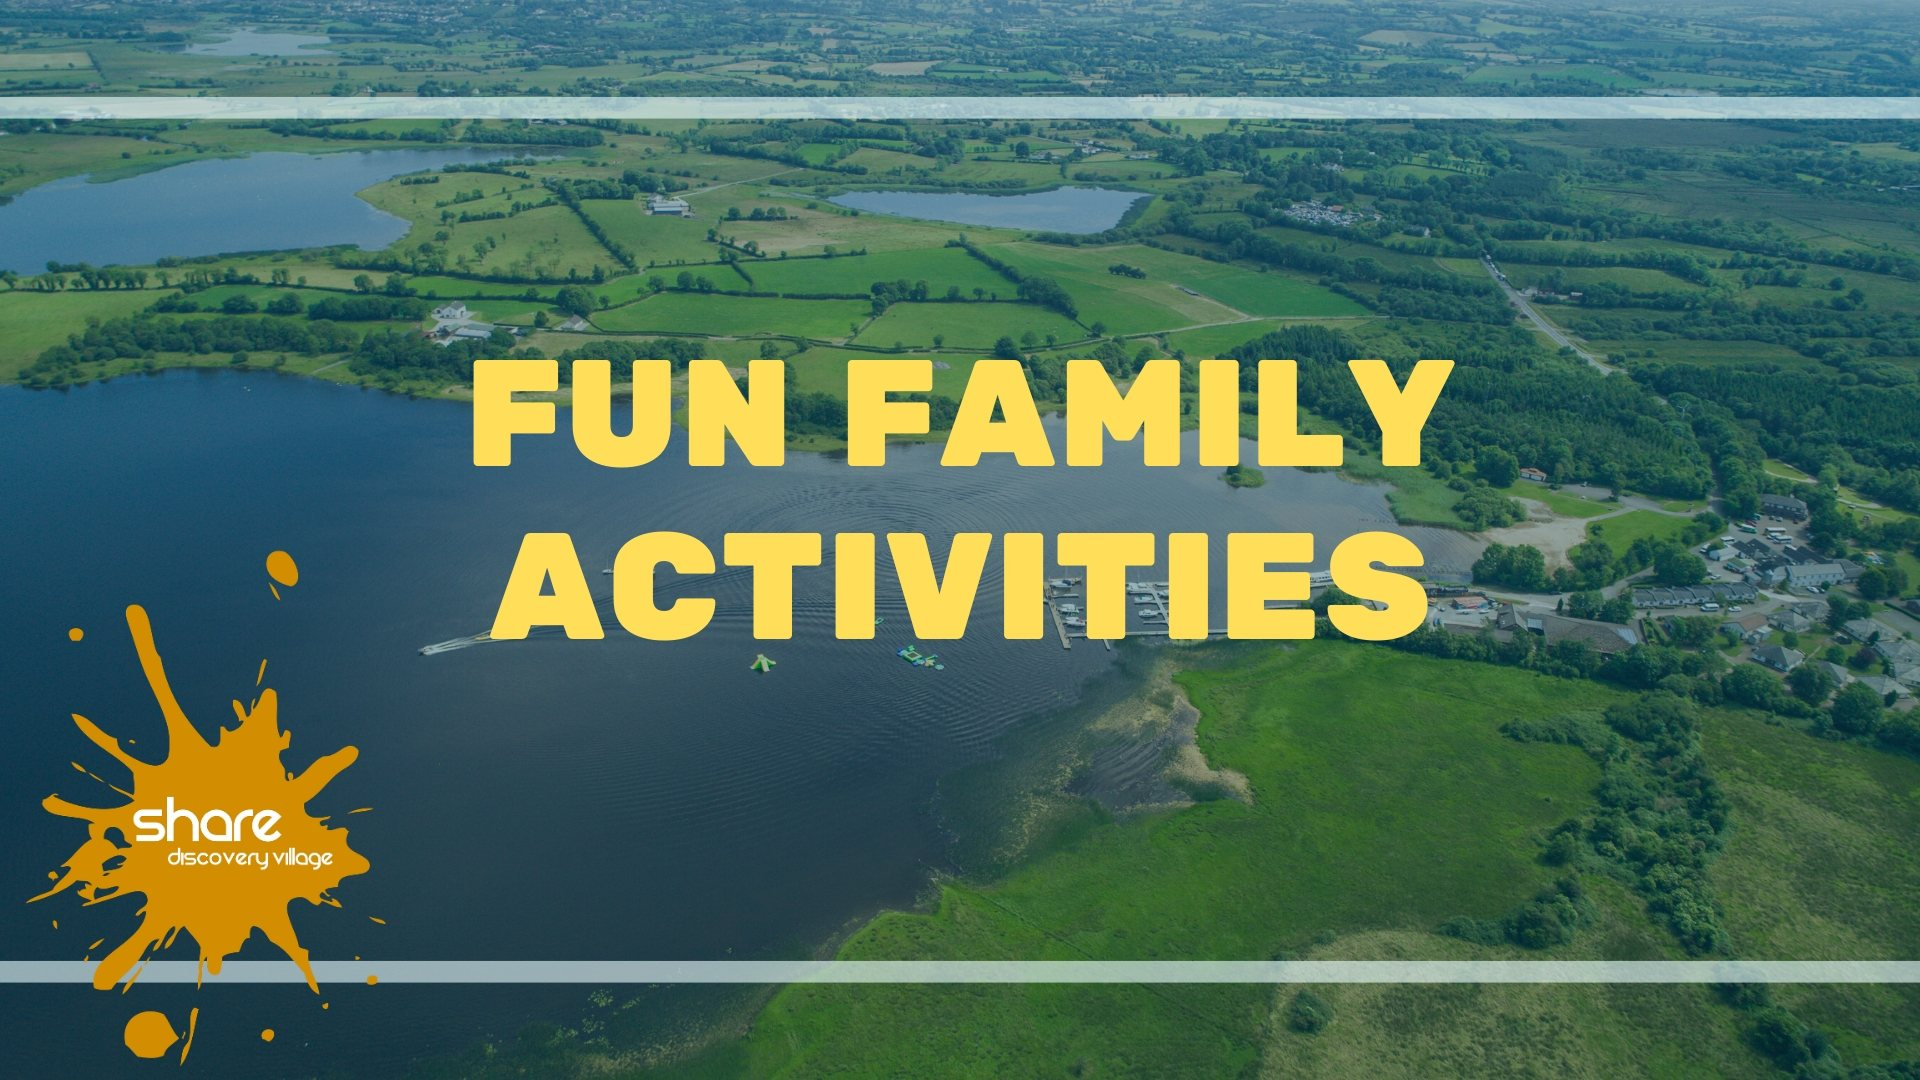 15 Fun Family Activities in Fermanagh